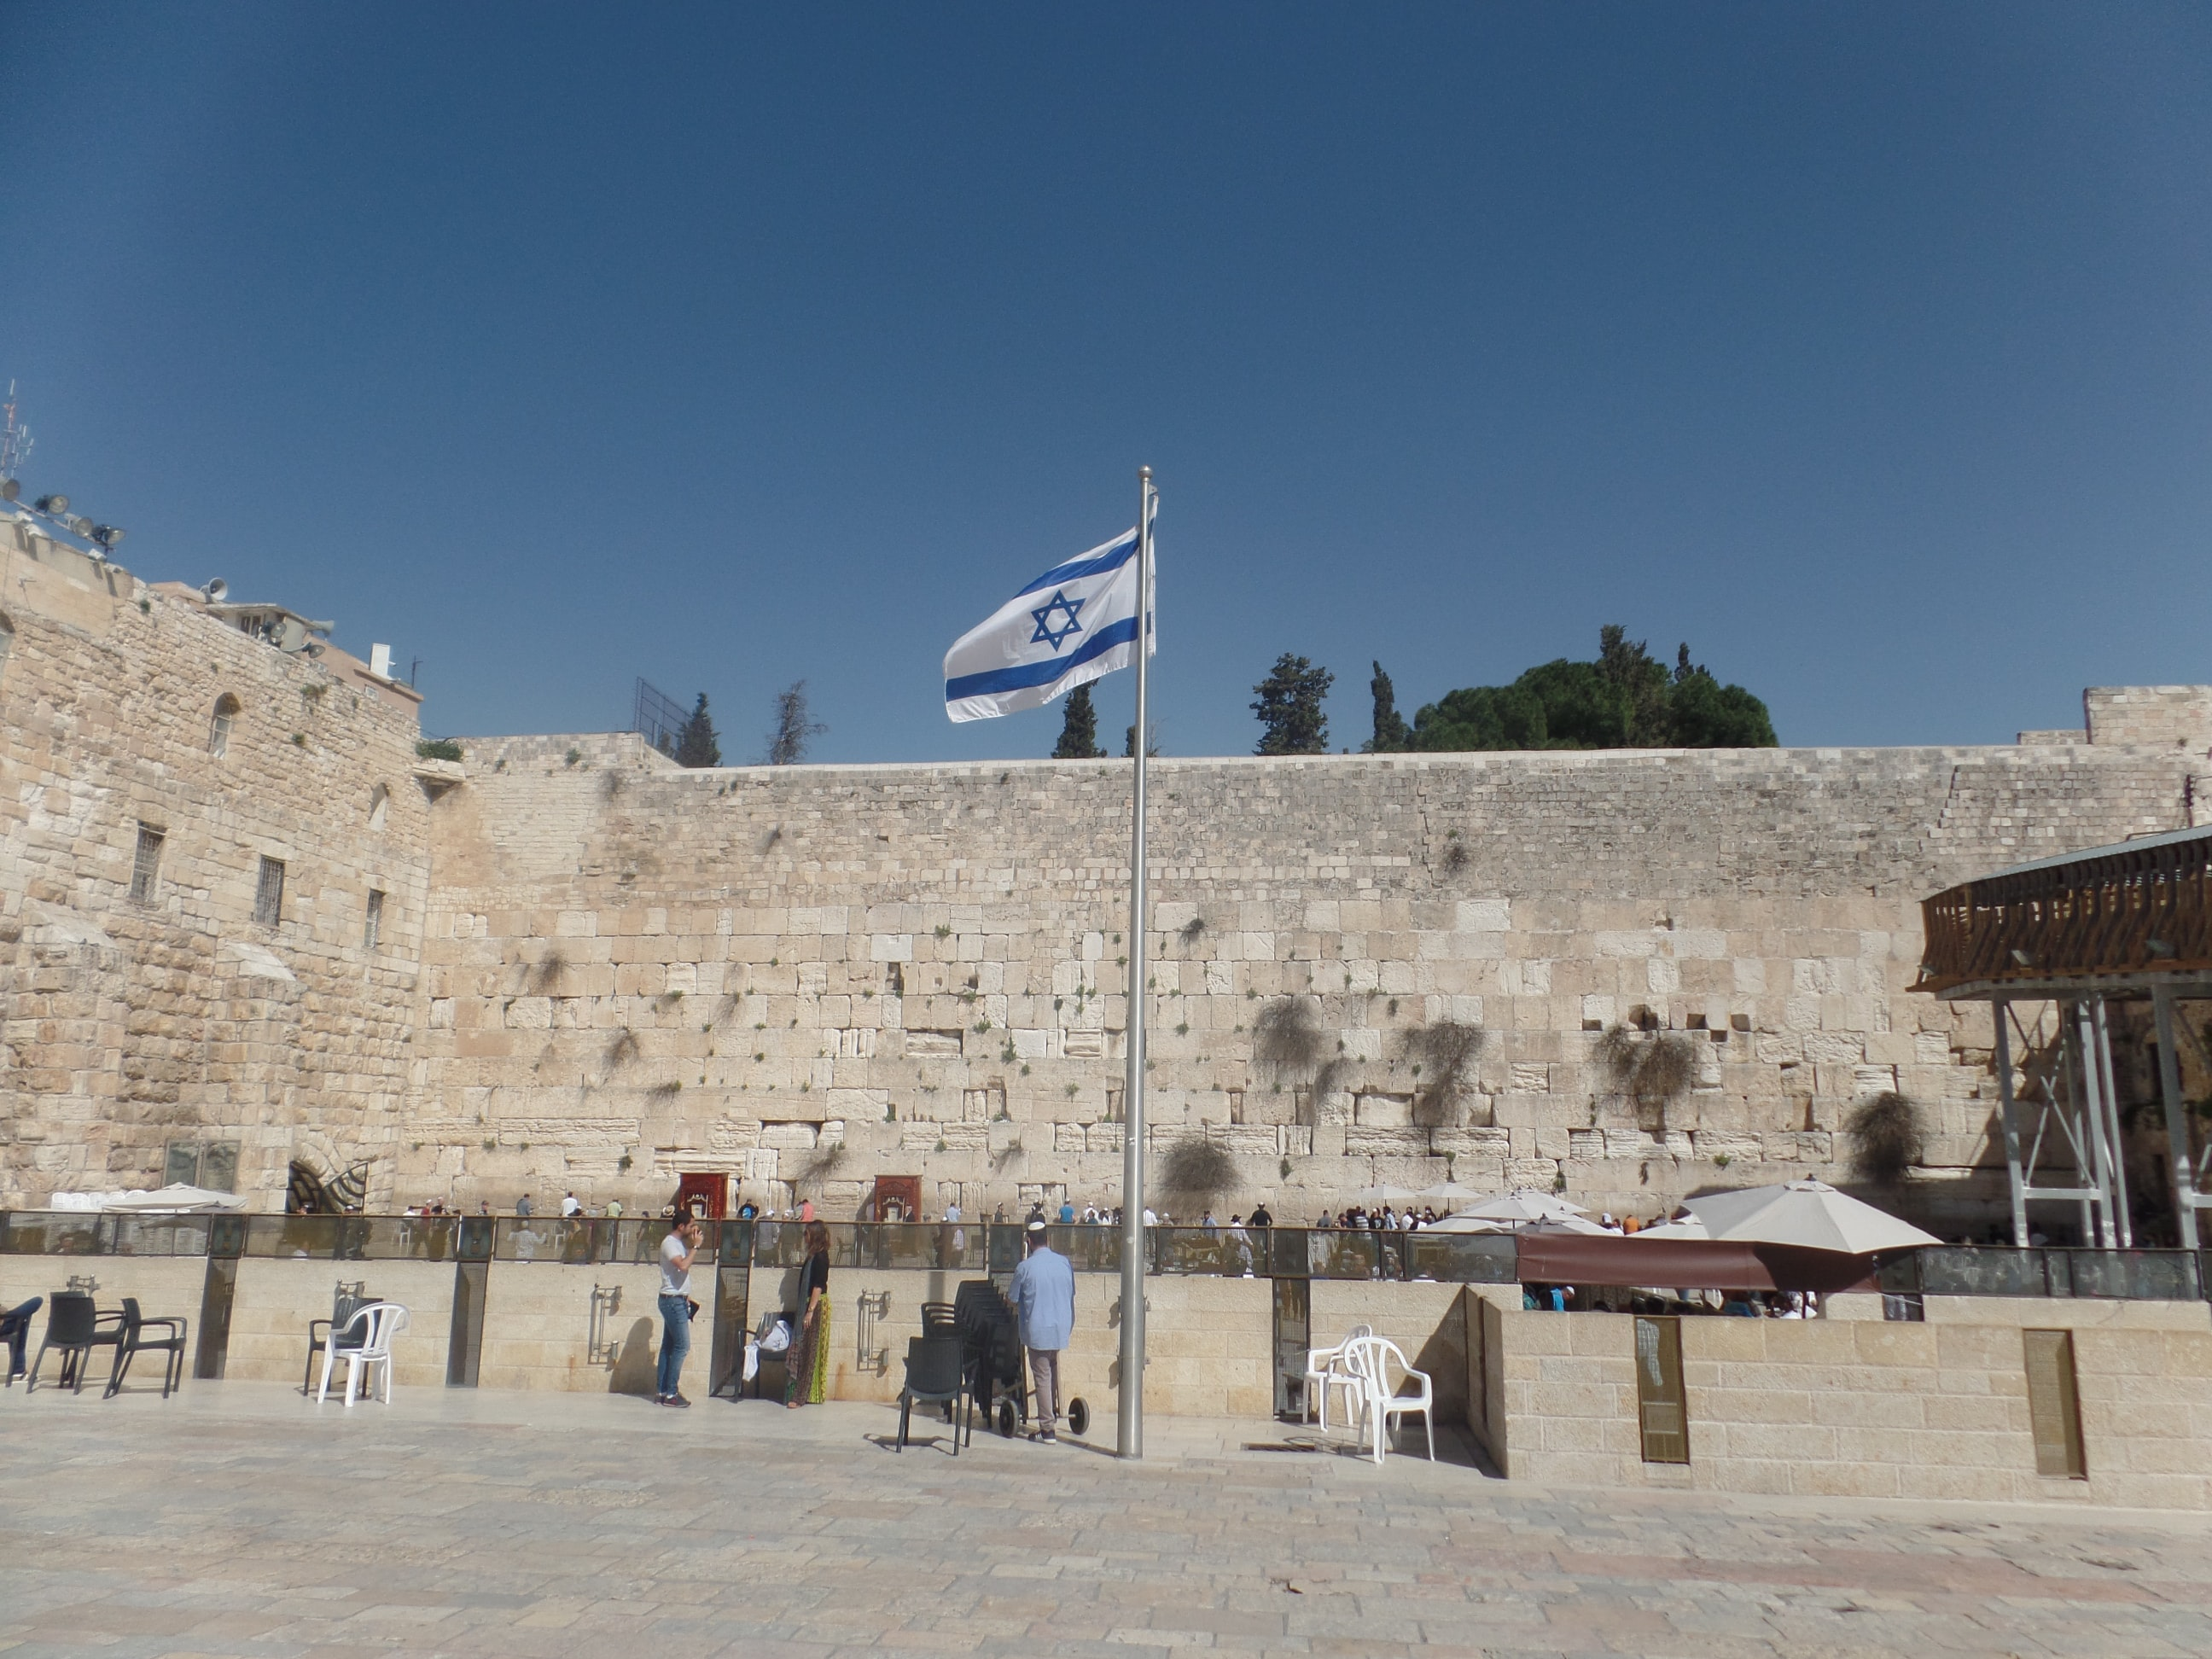 People talking to each other in a gathering spot in Israel, with the nation's flag raised high.